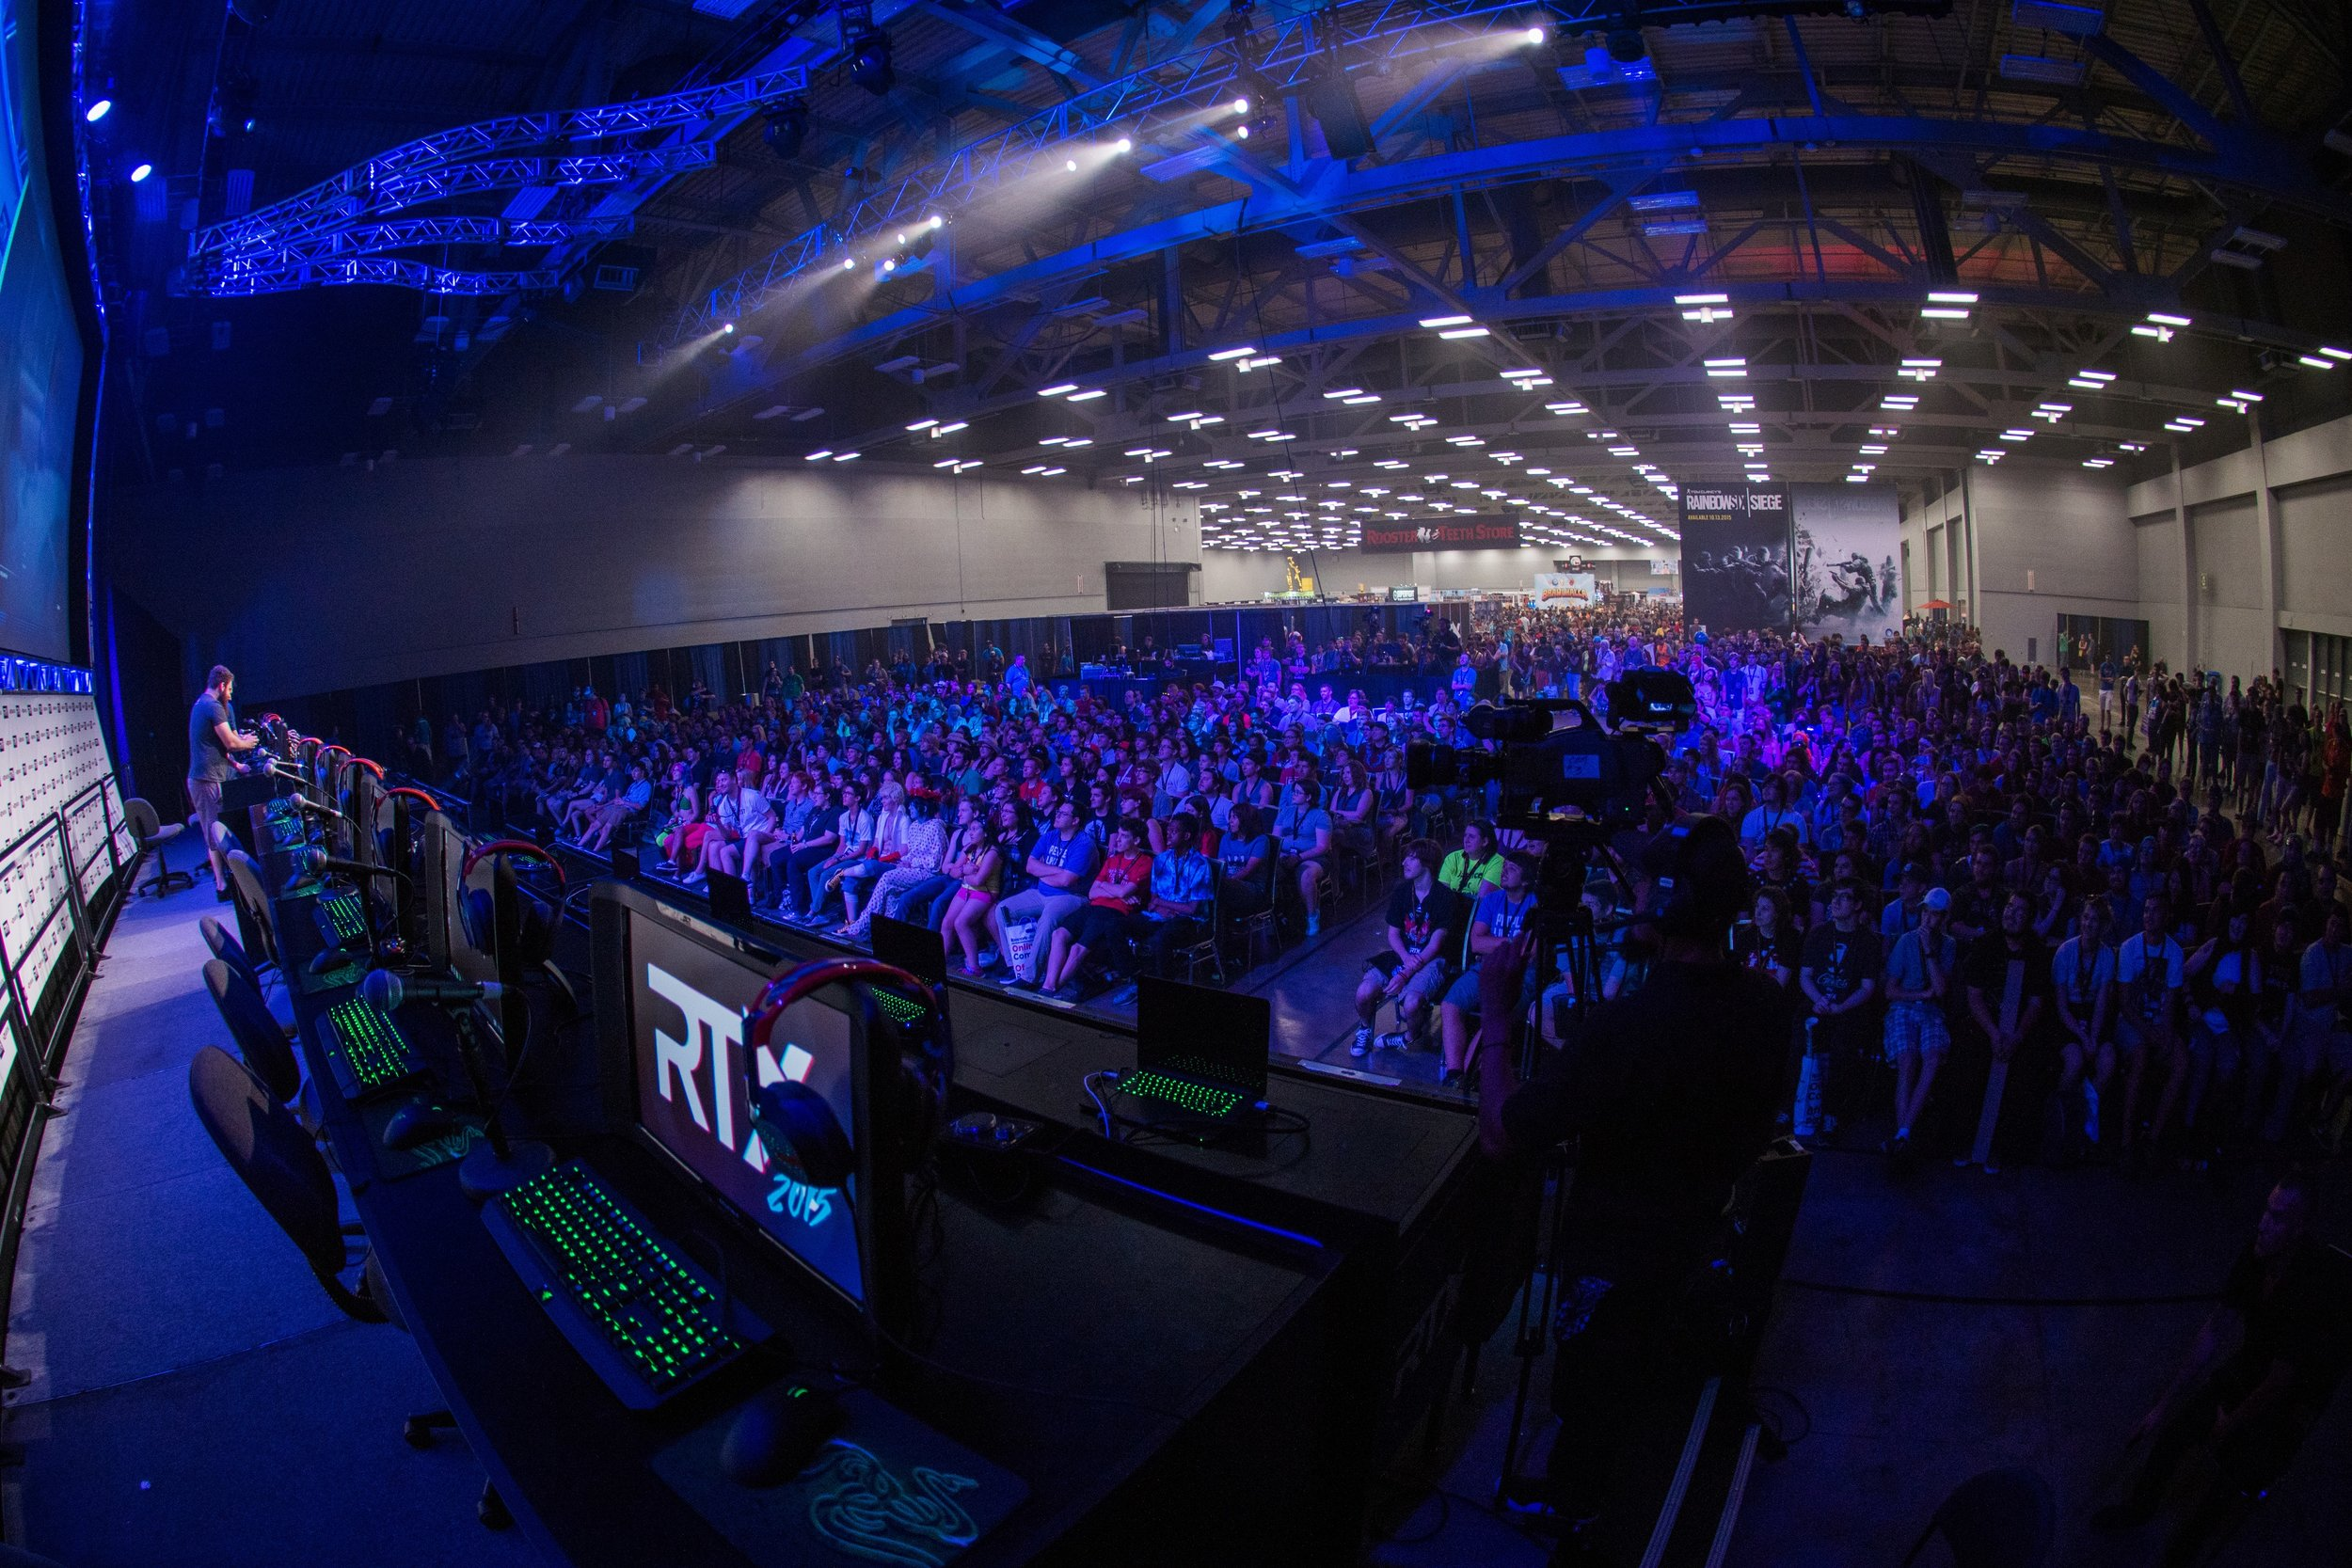 Center Stage at RTX in Austin